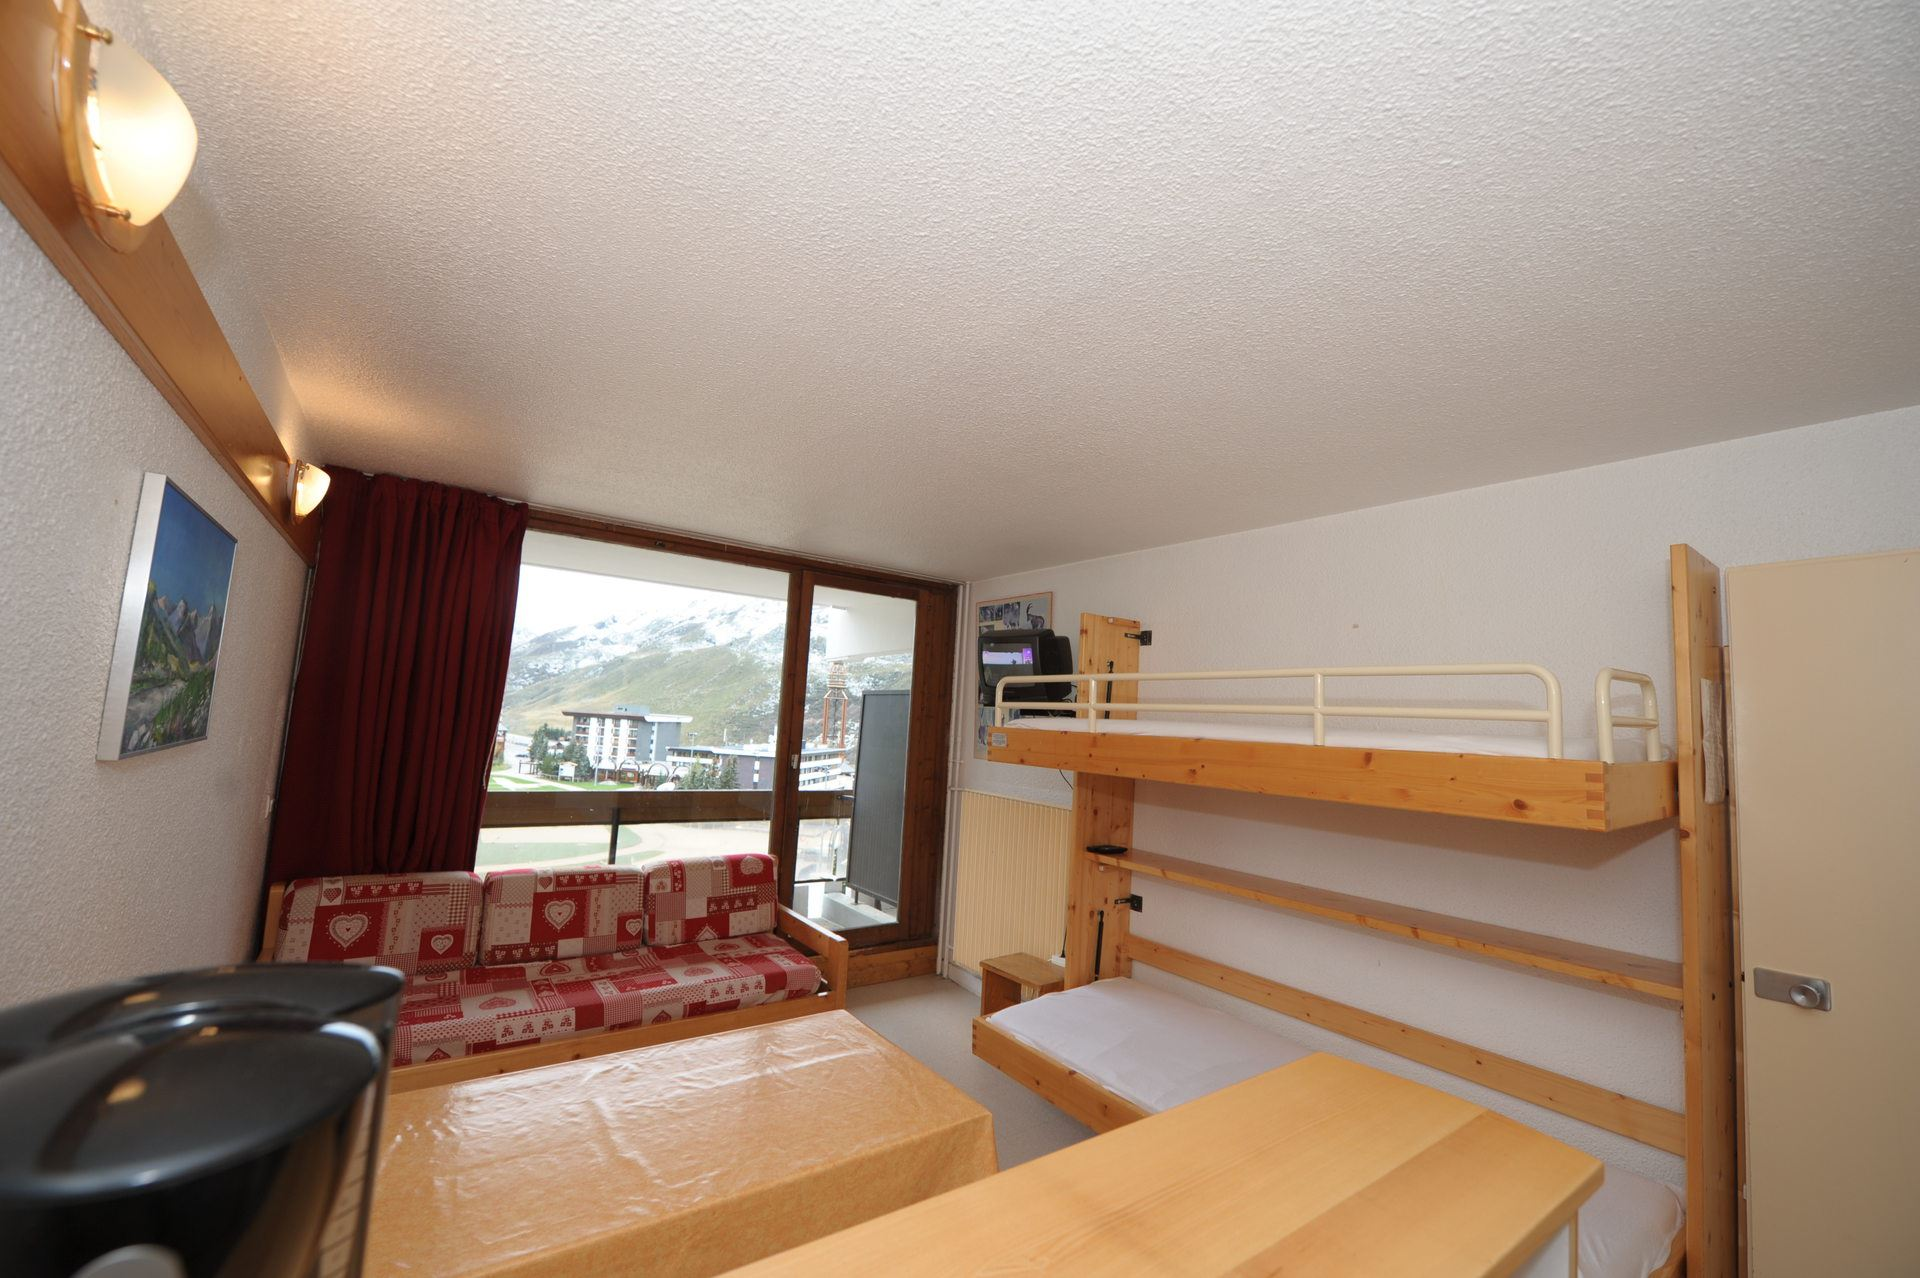 Studio 4 Pers skis aux pieds / CHAVIERE 616